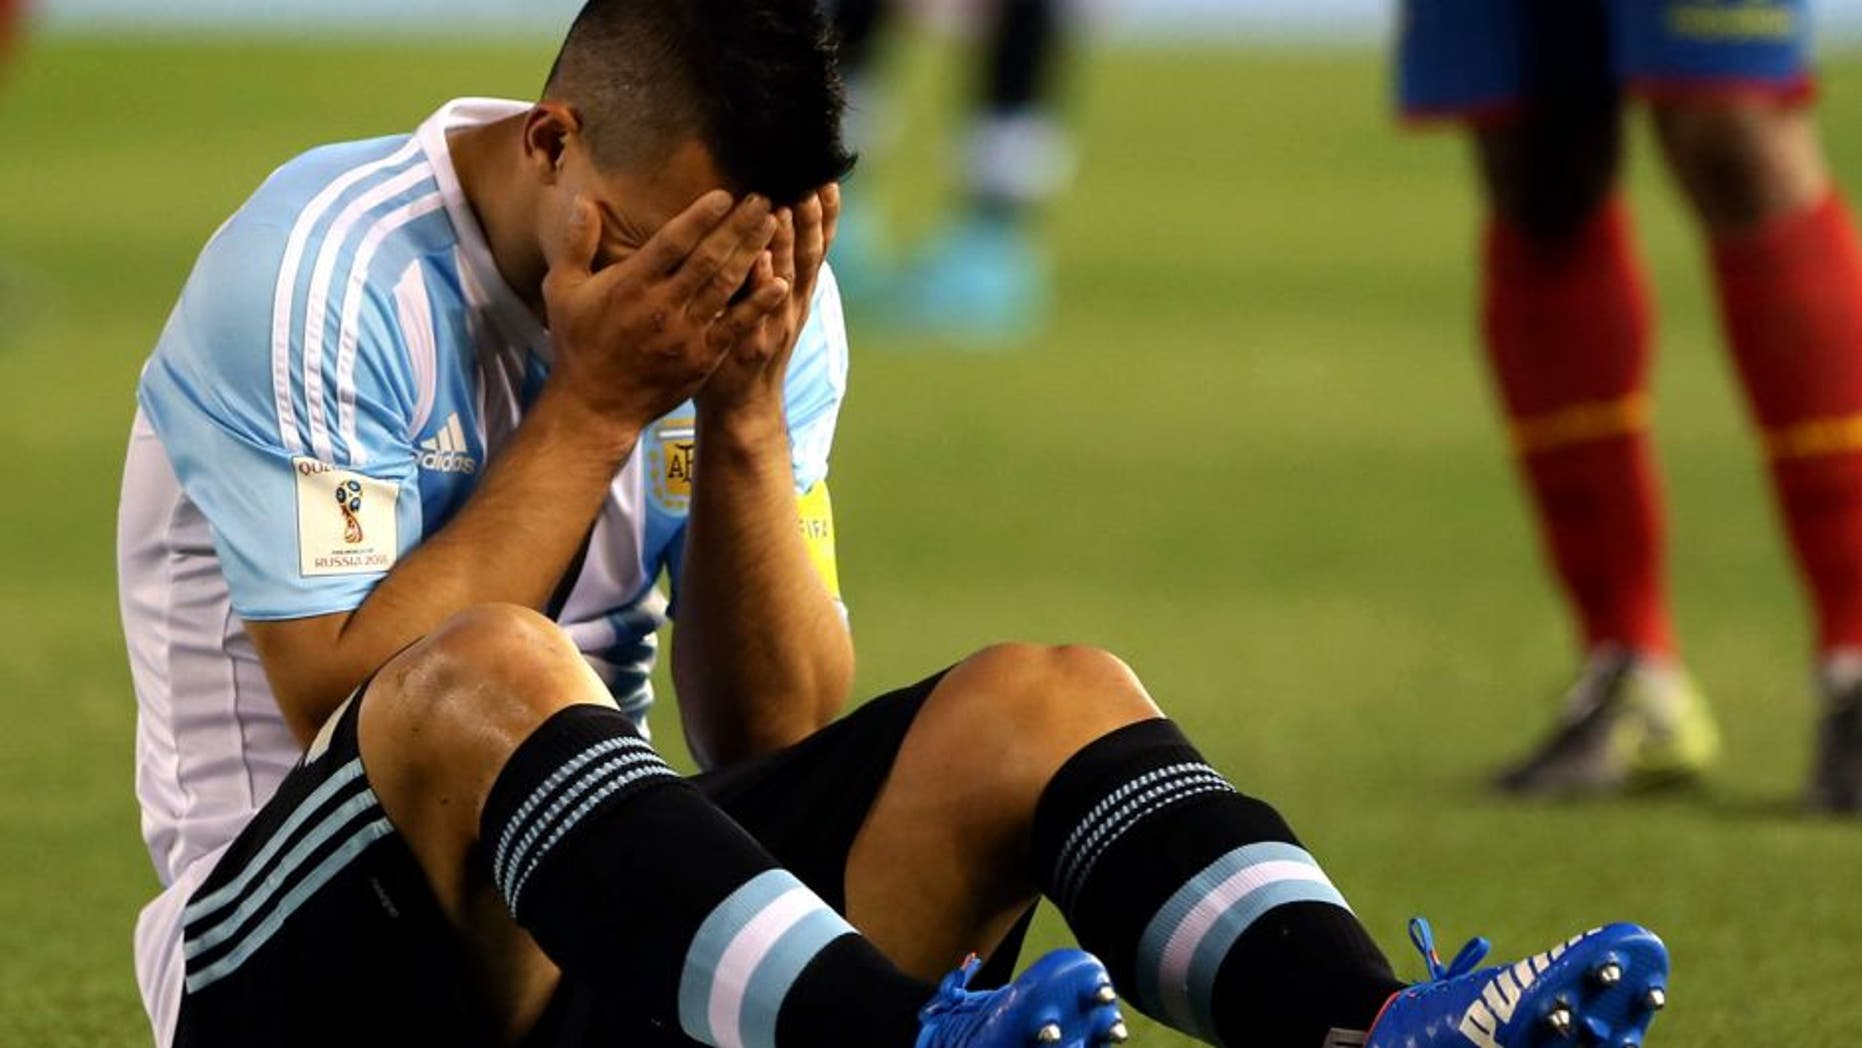 BUENOS AIRES, ARGENTINA - OCTOBER 08: Sergio Aguero, of Argentina, grimaces in pain after being injured during a match between Argentina and Ecuador as part of FIFA 2018 World Cup Qualifier at Monumental Antonio Vespucio Liberti Stadium on October 08, 2015 in Buenos Aires, Argentina. (Photo by Daniel Jayo/LatinContent/Getty Images)